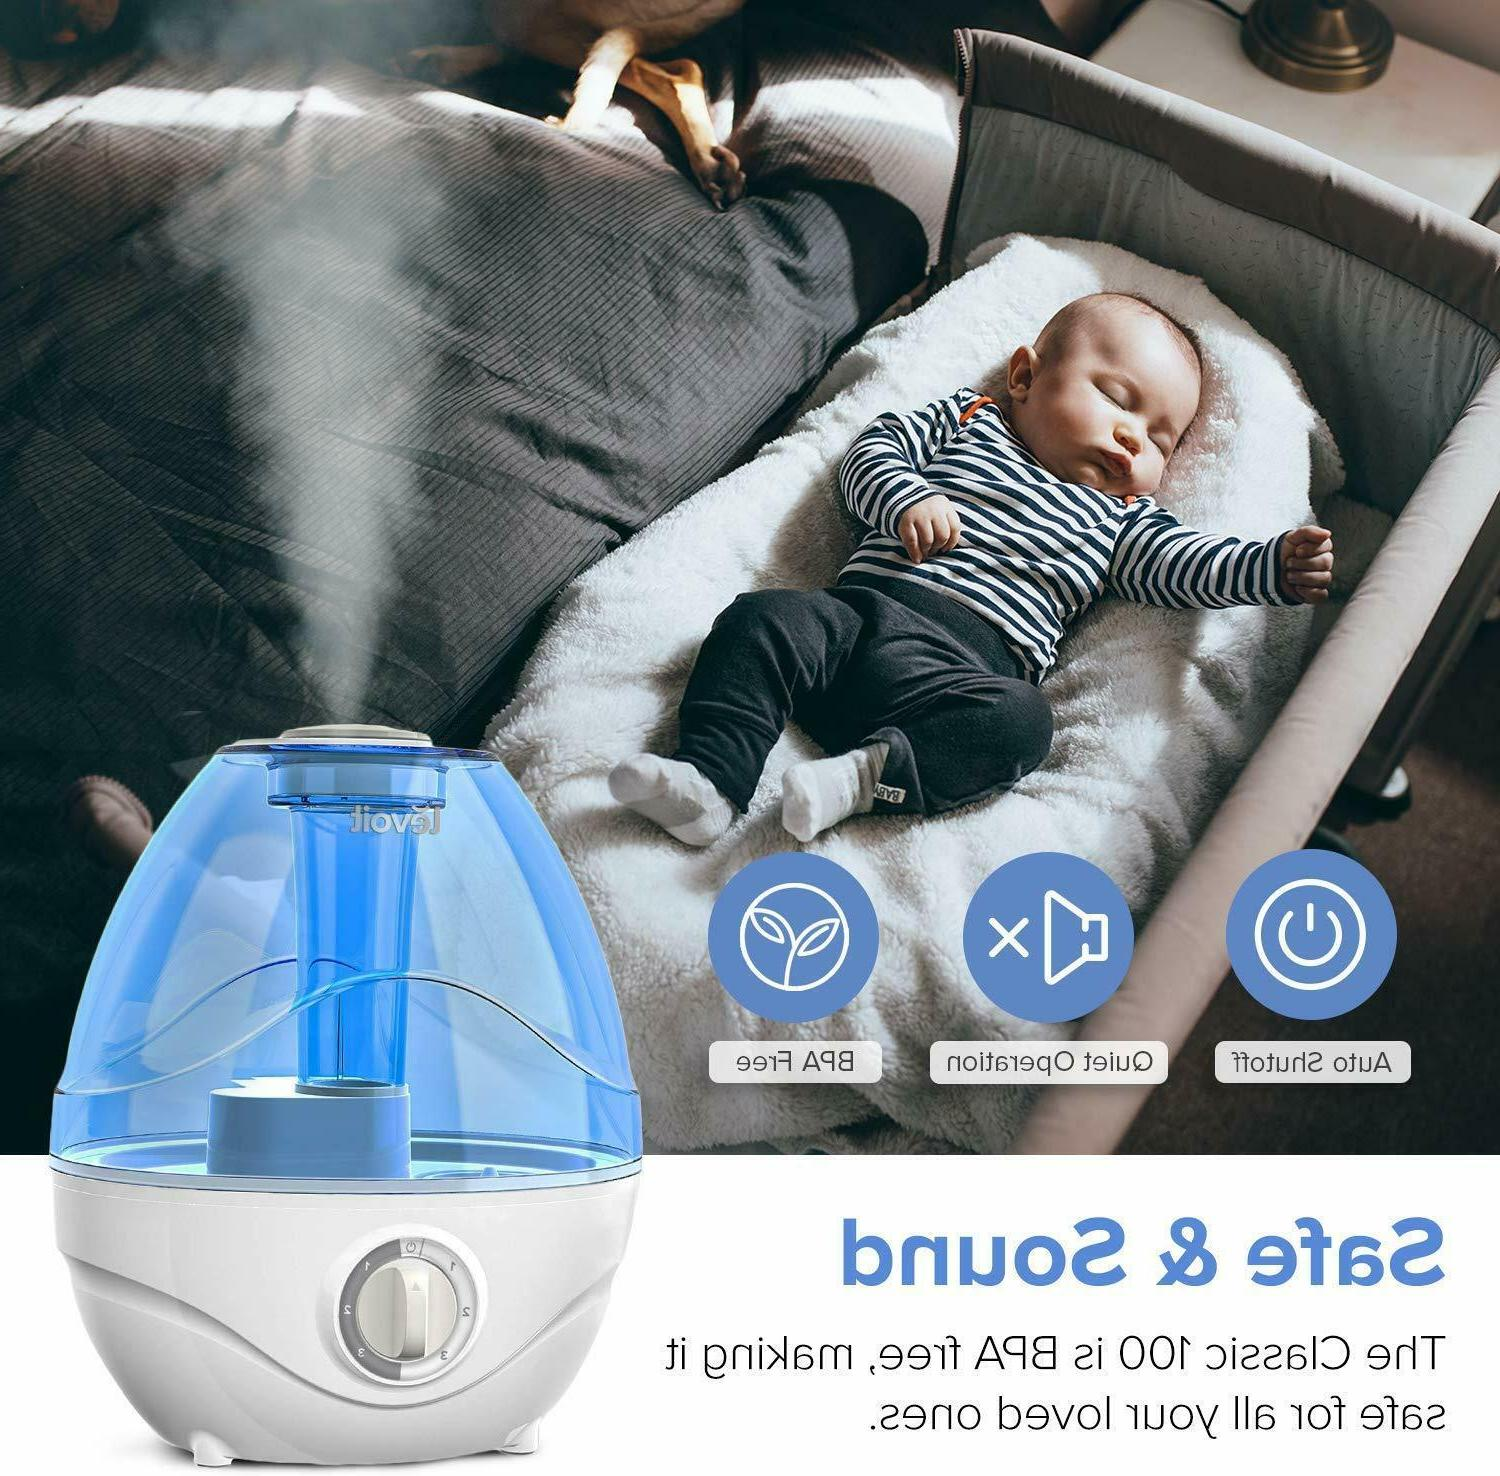 LEVOIT Humidifiers Ultrasonic Cool Mist Humidifier Babies Shut-Off